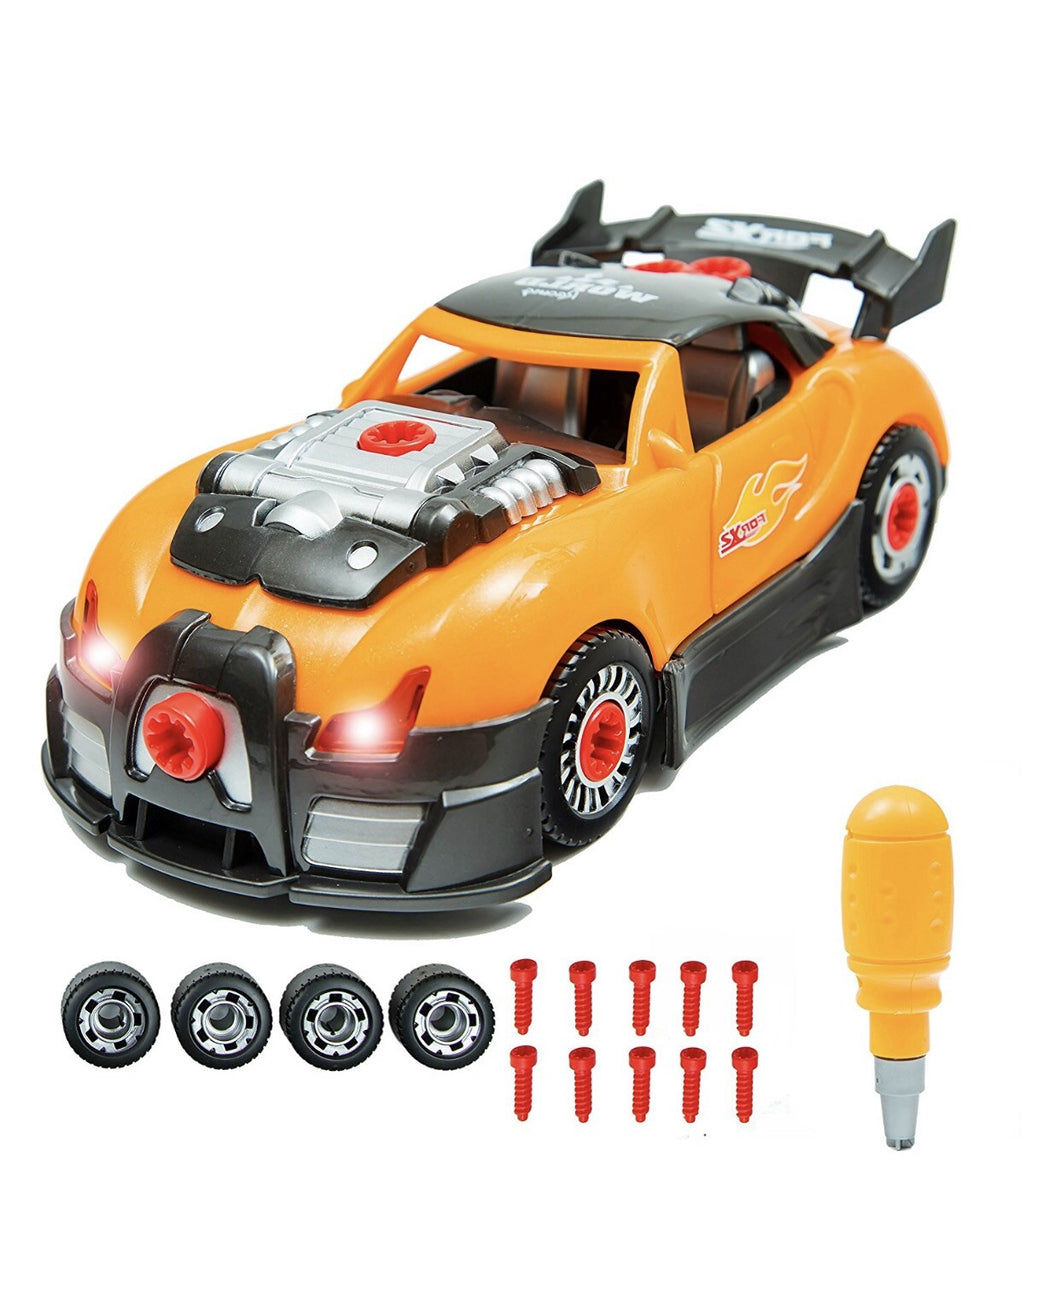 Brainnovative Toys Take Apart Toys Racing Car Kit Set U2013 Build Your Own  Model Race Car